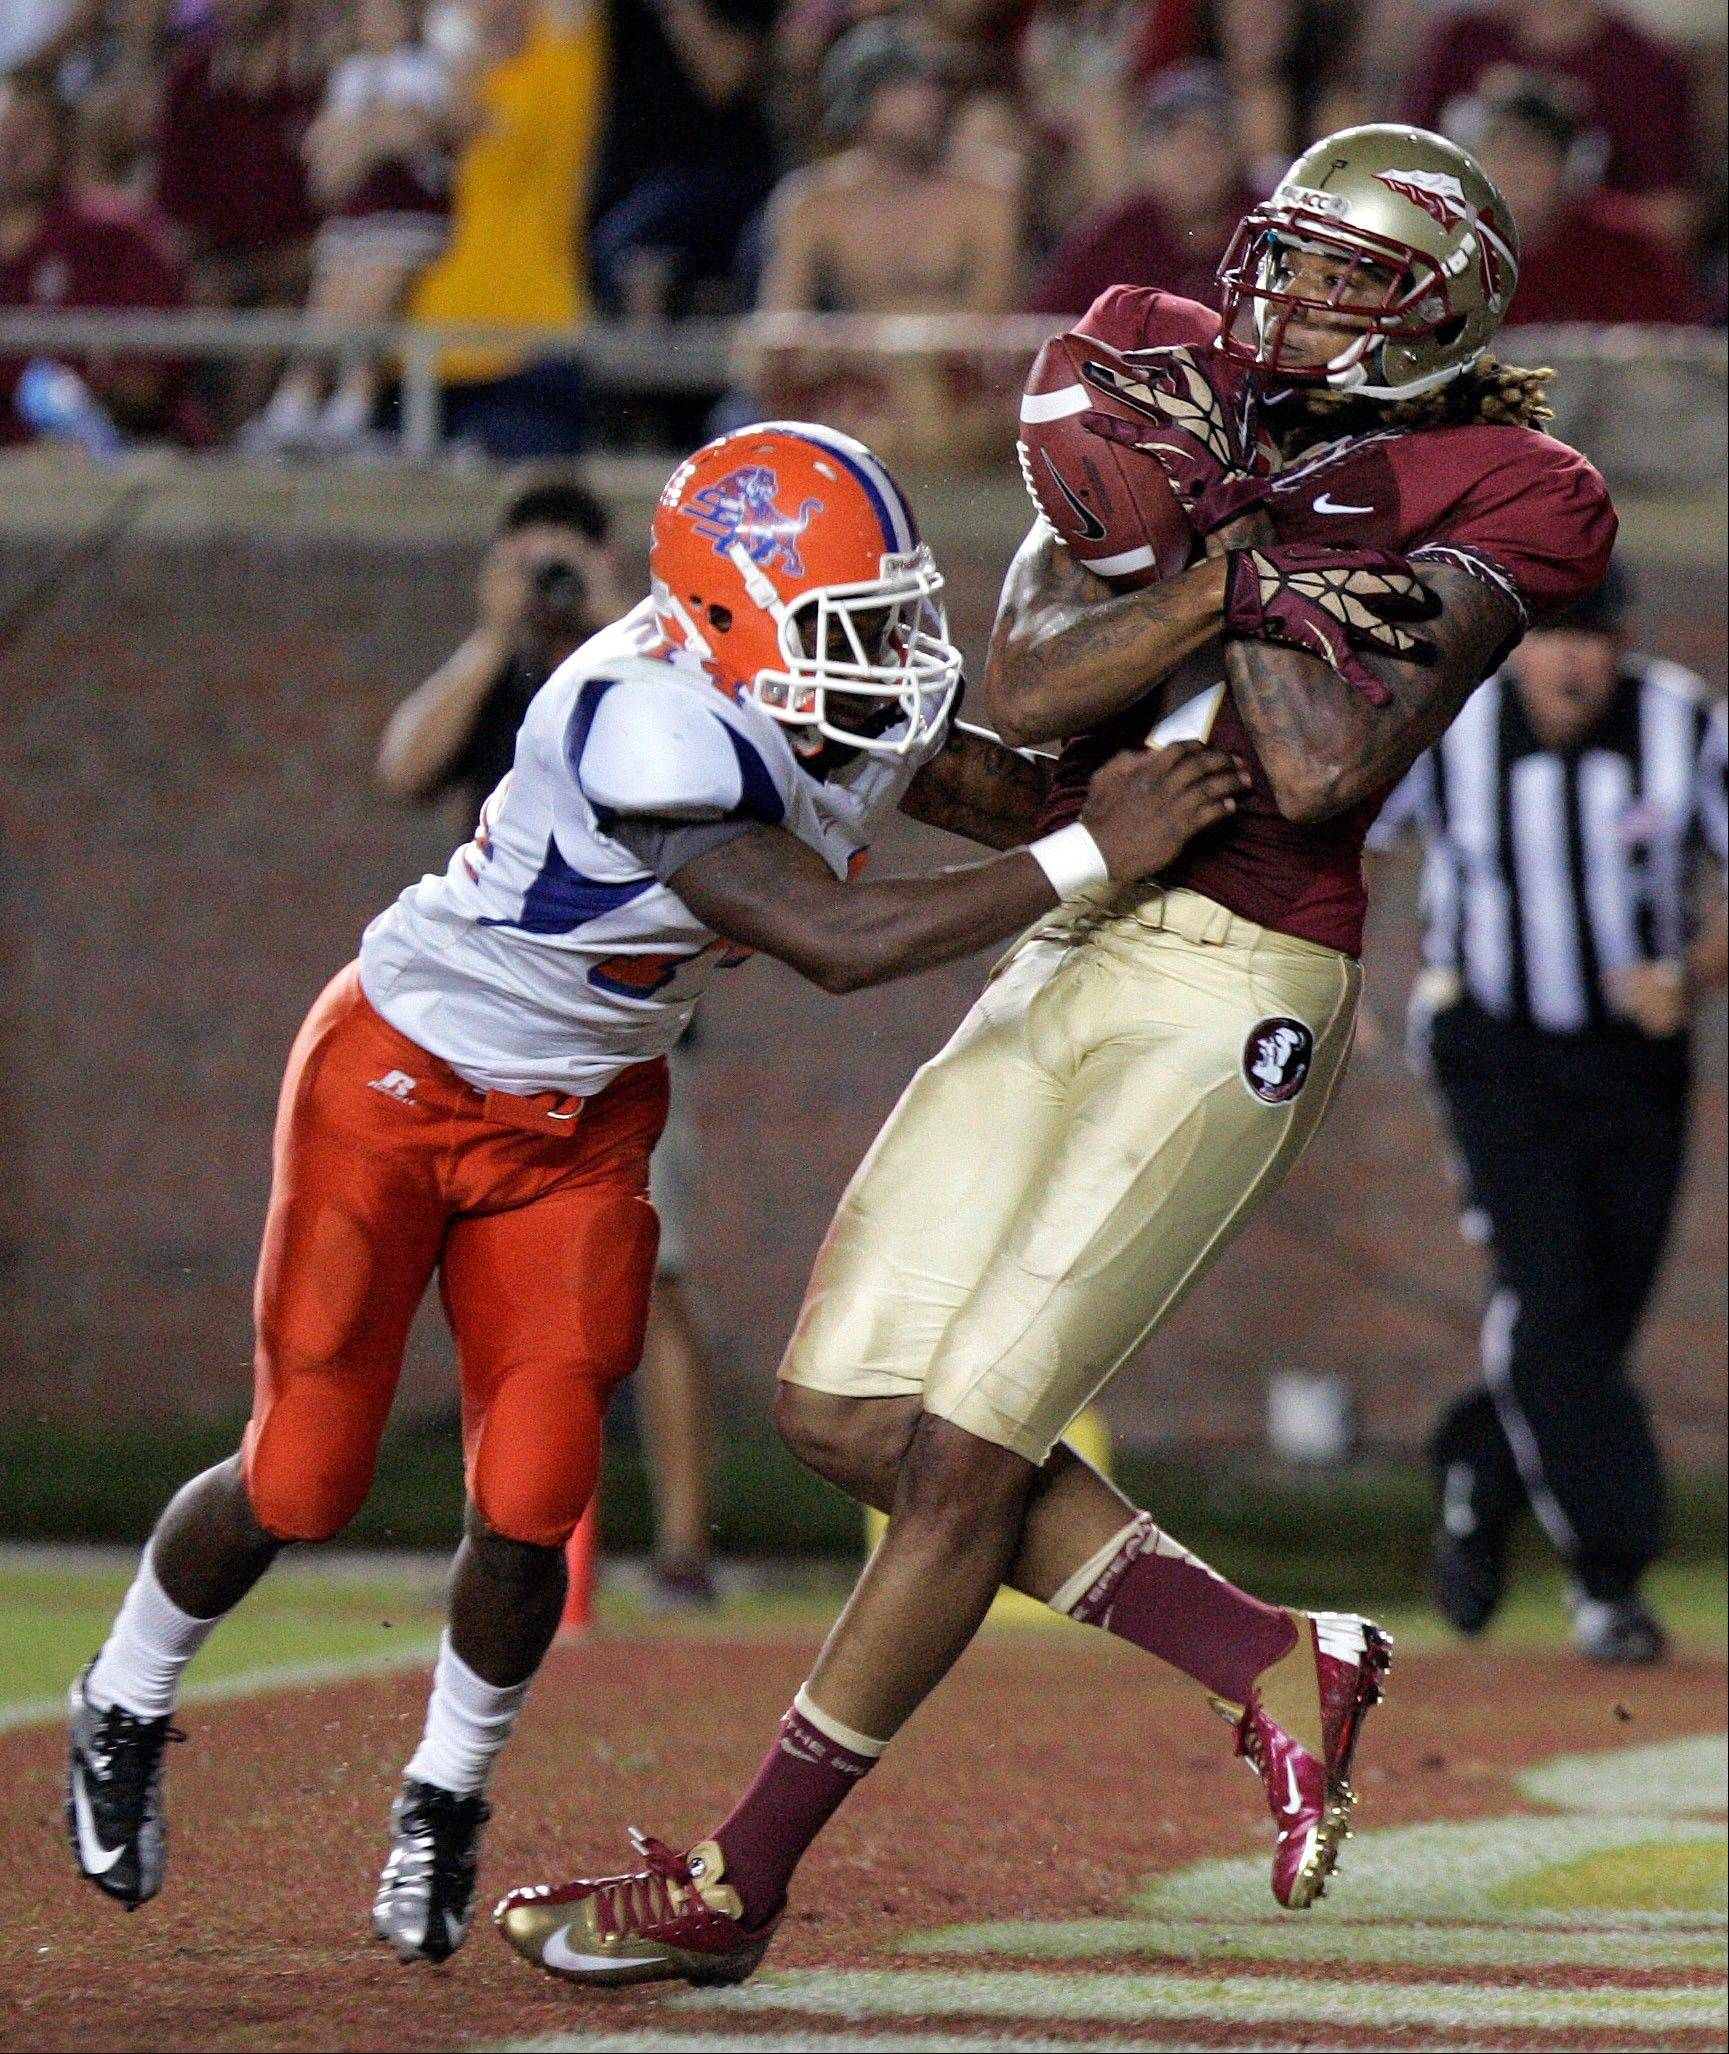 Florida State's Kevin Benjamin pulls in a touchdown pass past the defense of Savannah State's Wayne Johnson in the third quarter Saturday in Tallahassee, Fla.